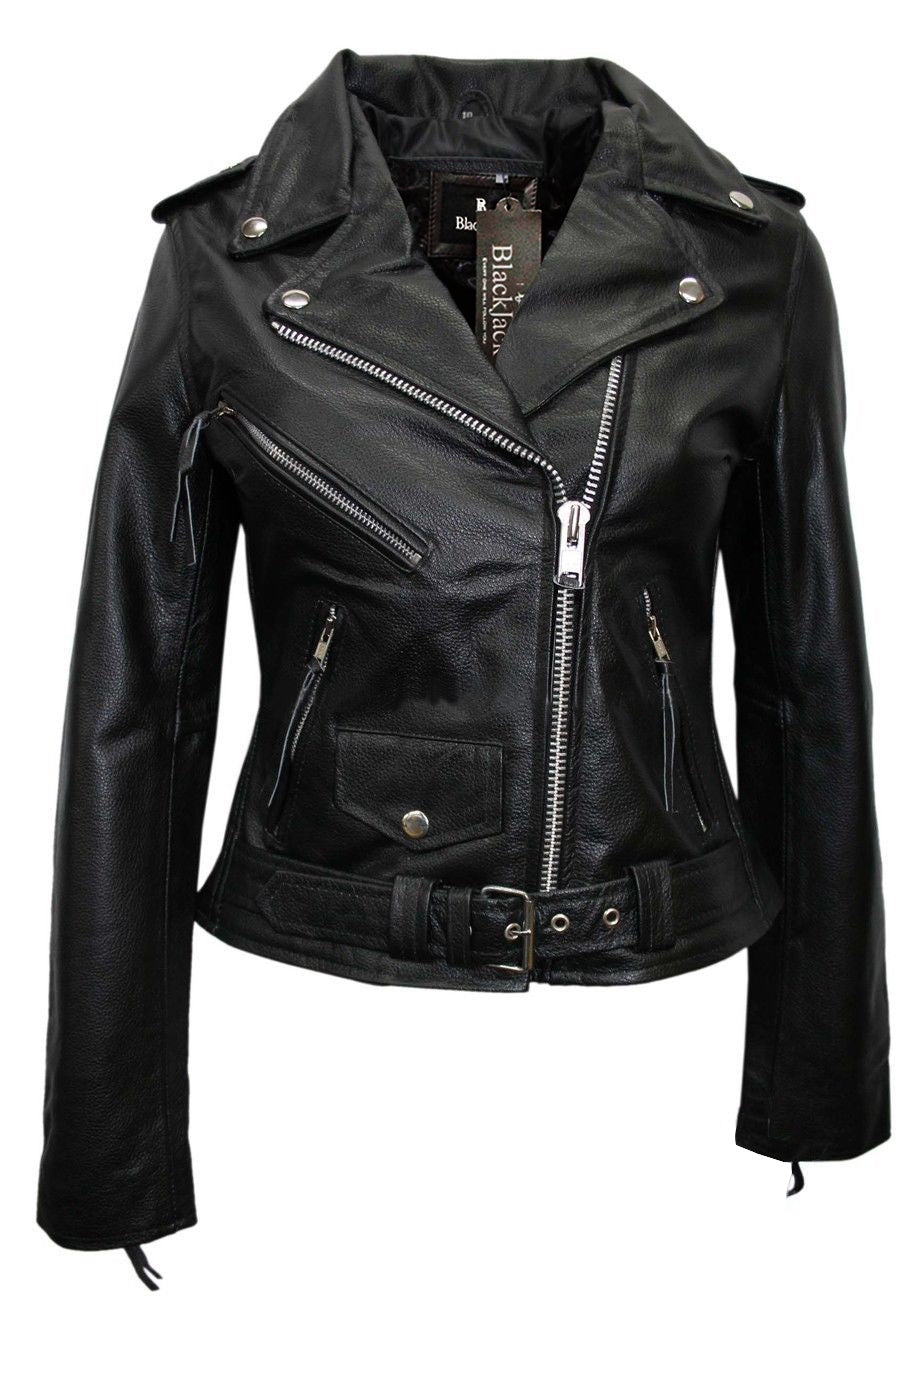 Designer Fashion Soft Leather Jacket|BlackJack Leathers